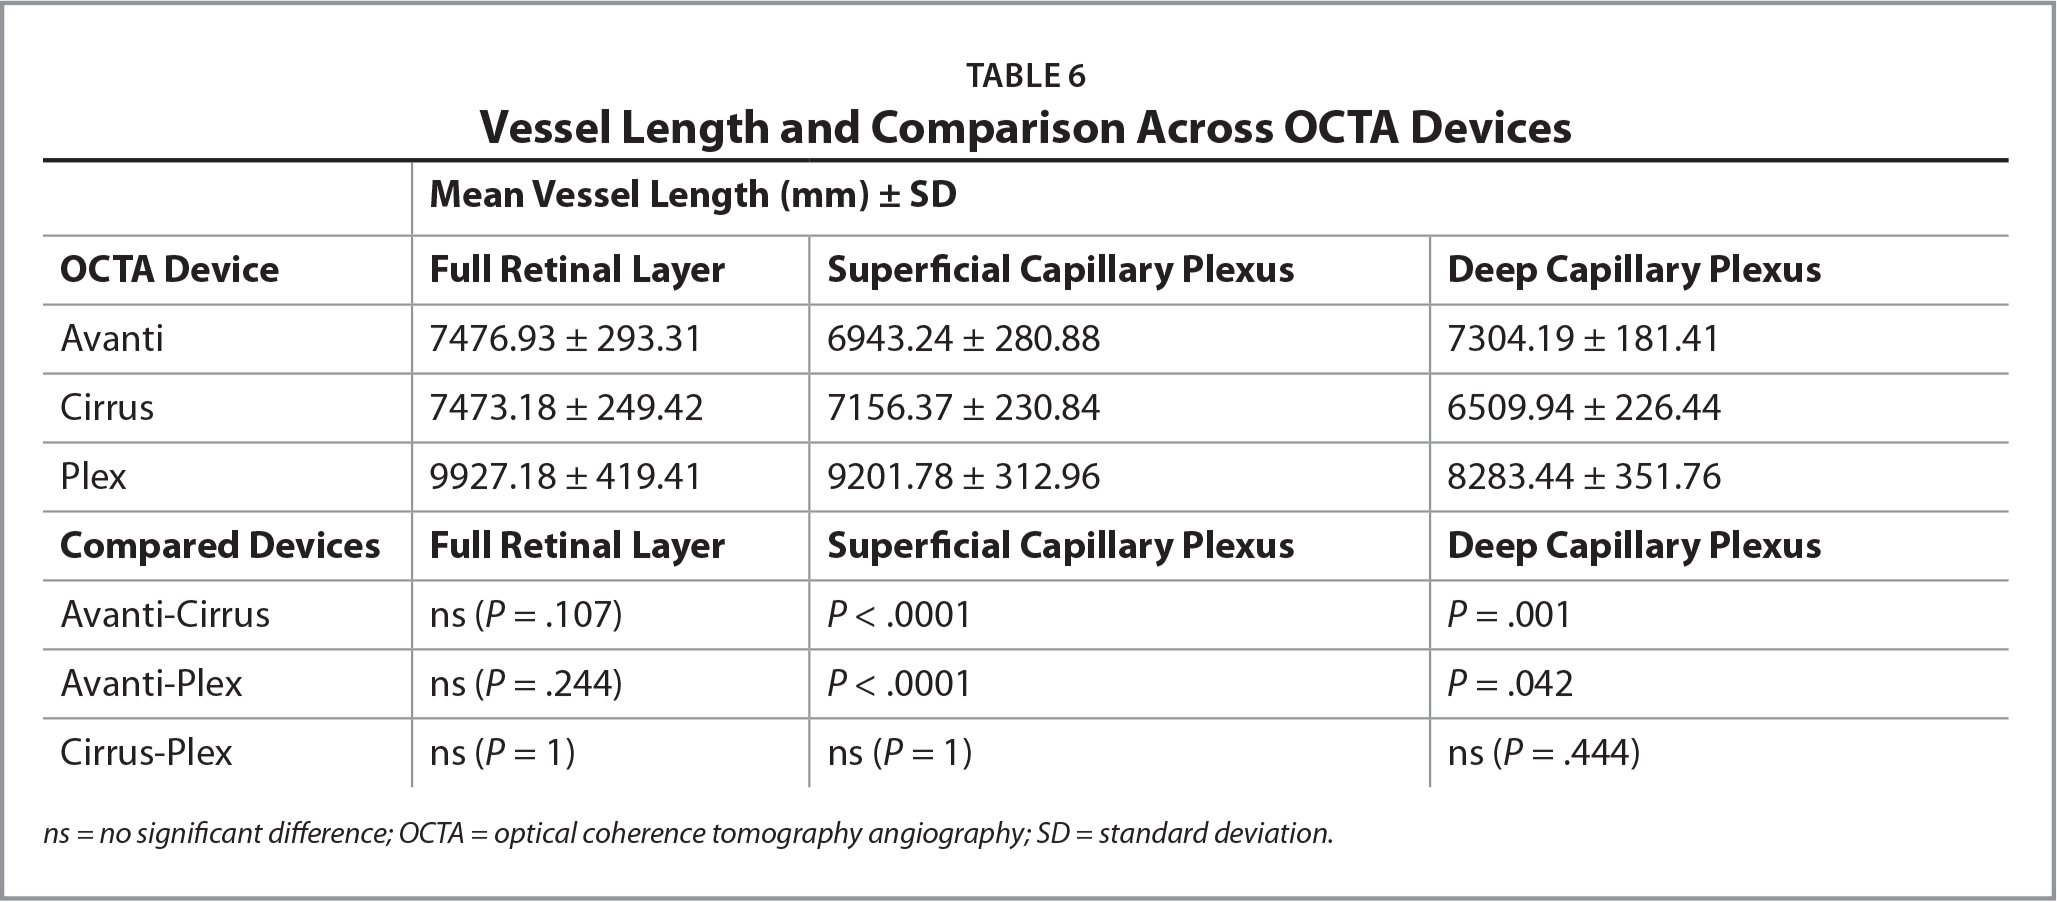 Vessel Length and Comparison Across OCTA Devices